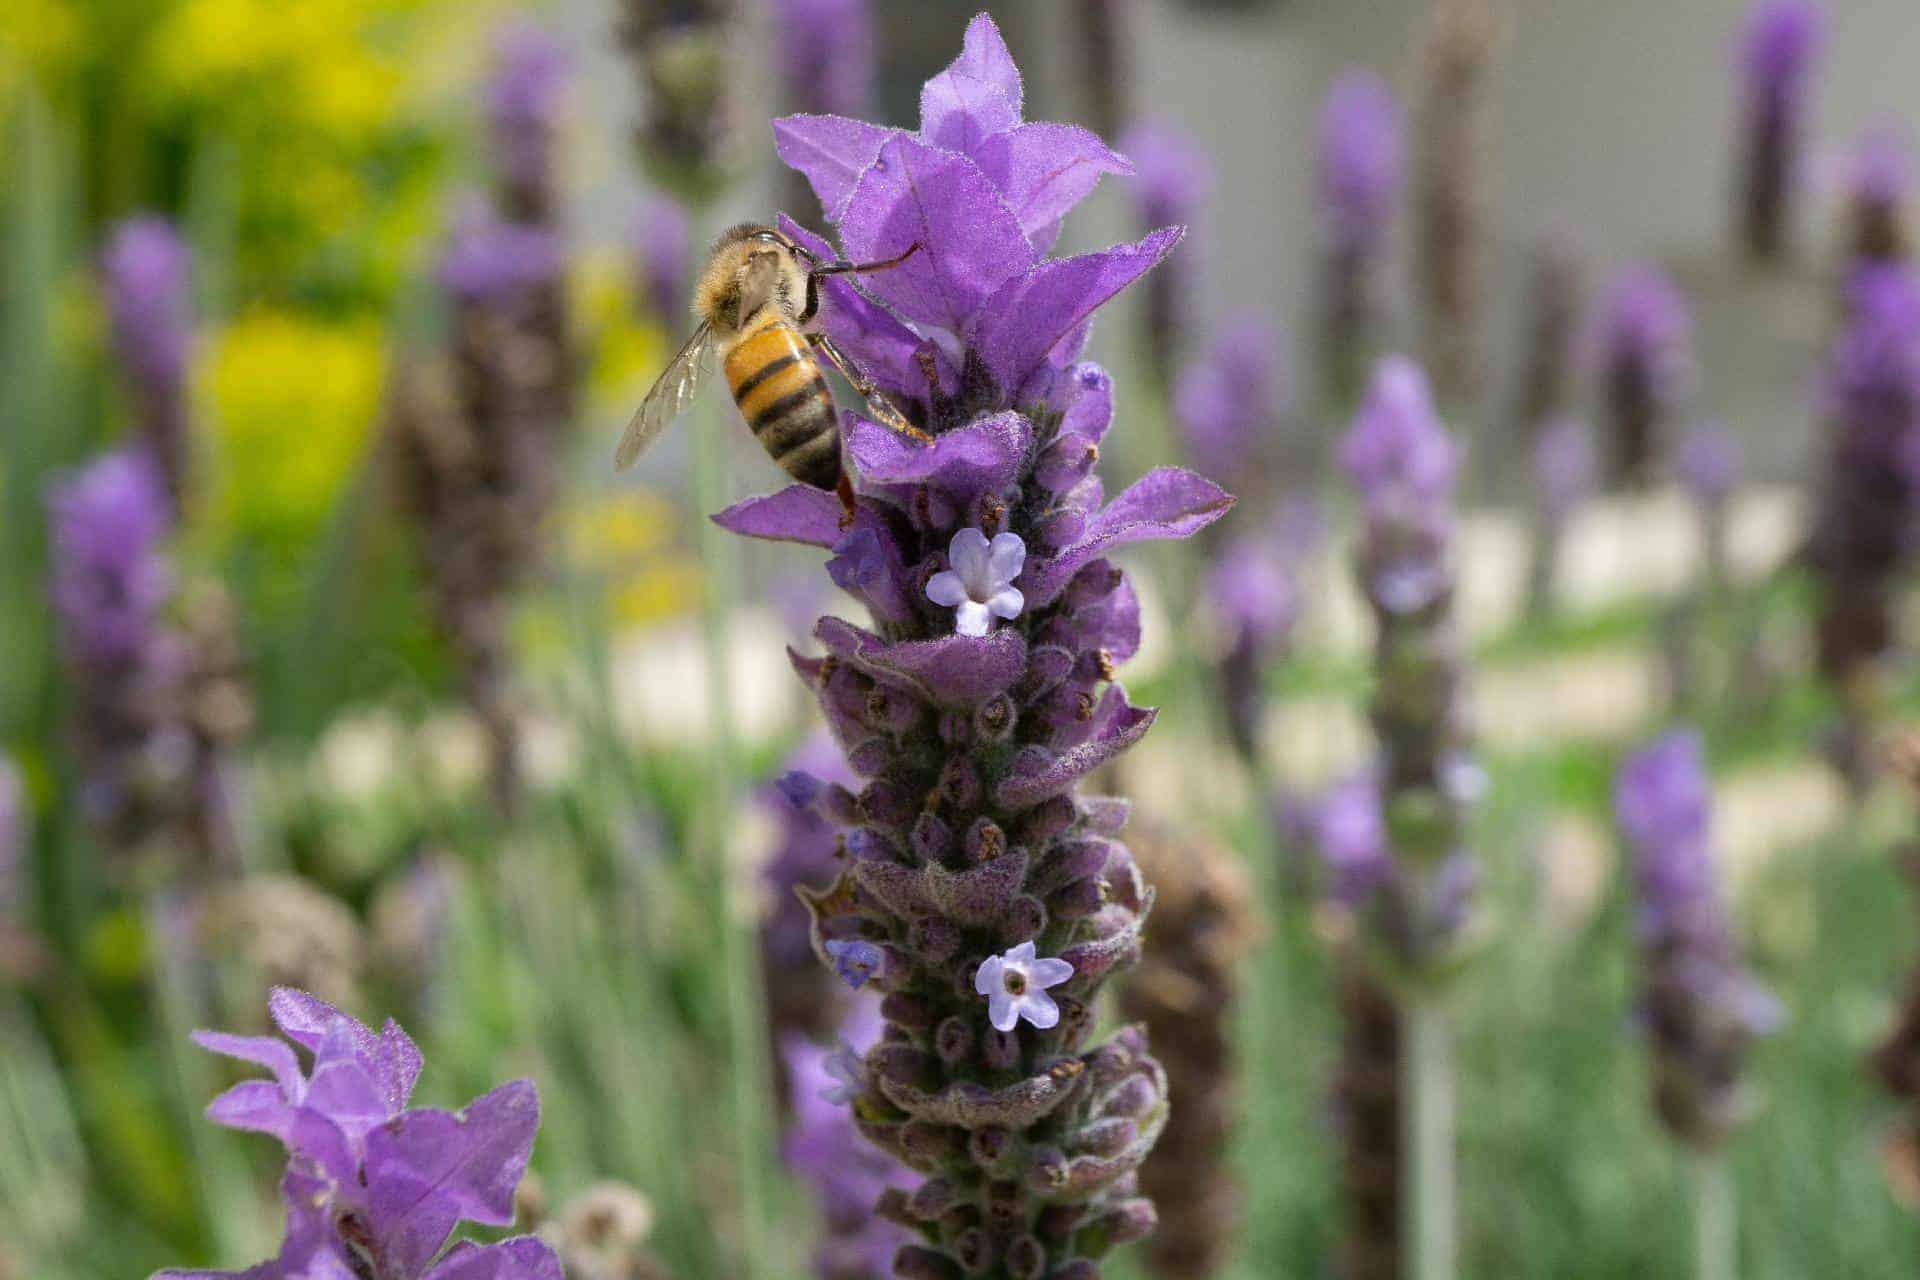 Why do bees love lavender so much?